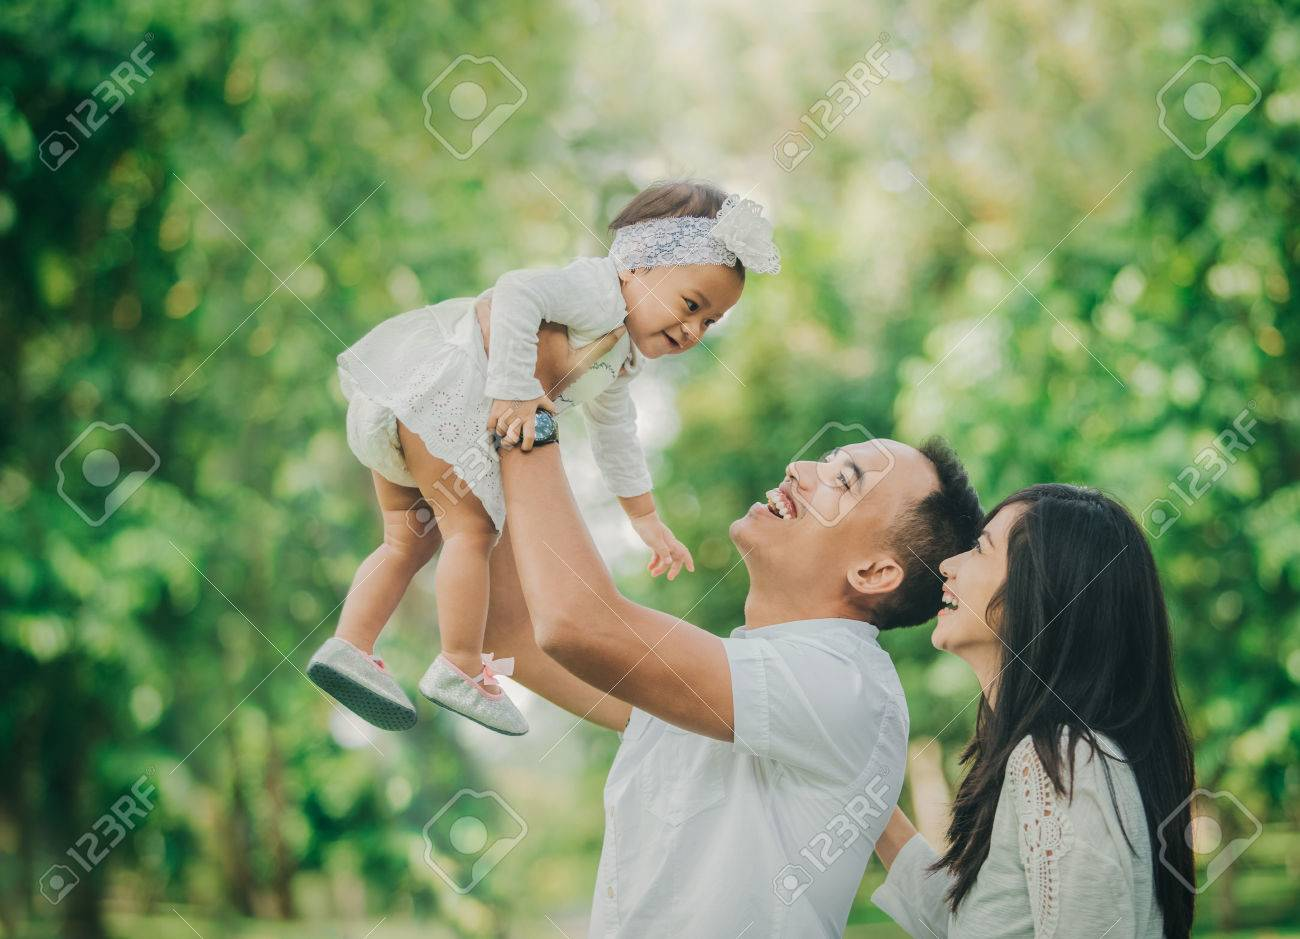 portrait of Beautiful family with cute baby in the park having fun together - 66164098